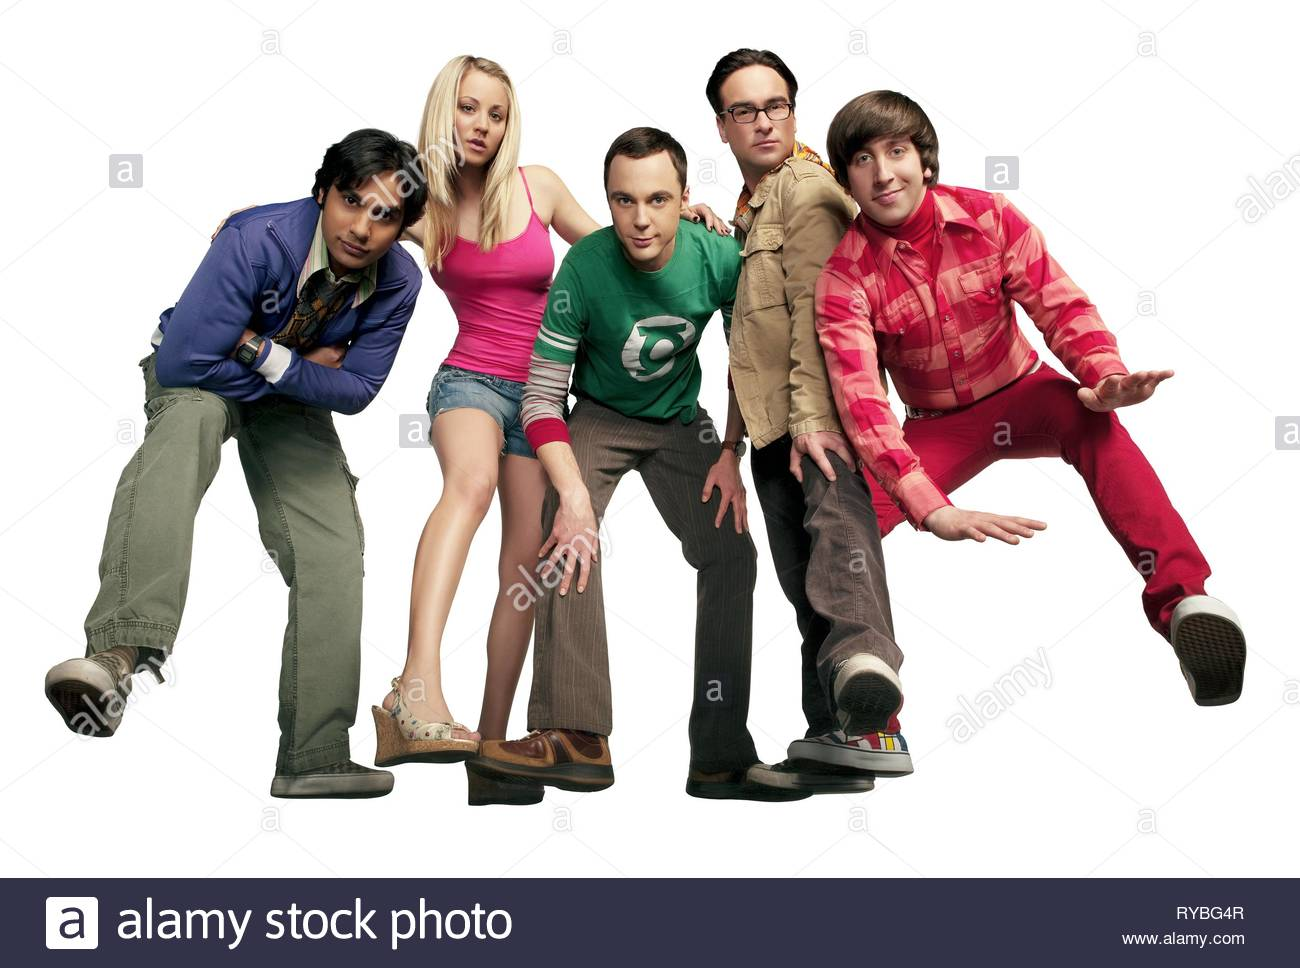 KUNAL NAYYAR, KALEY CUOCO, JIM PARSONS, JOHNNY GALECKI,SIMON HELBERG, THE BIG BANG THEORY, 2007 - Stock Image